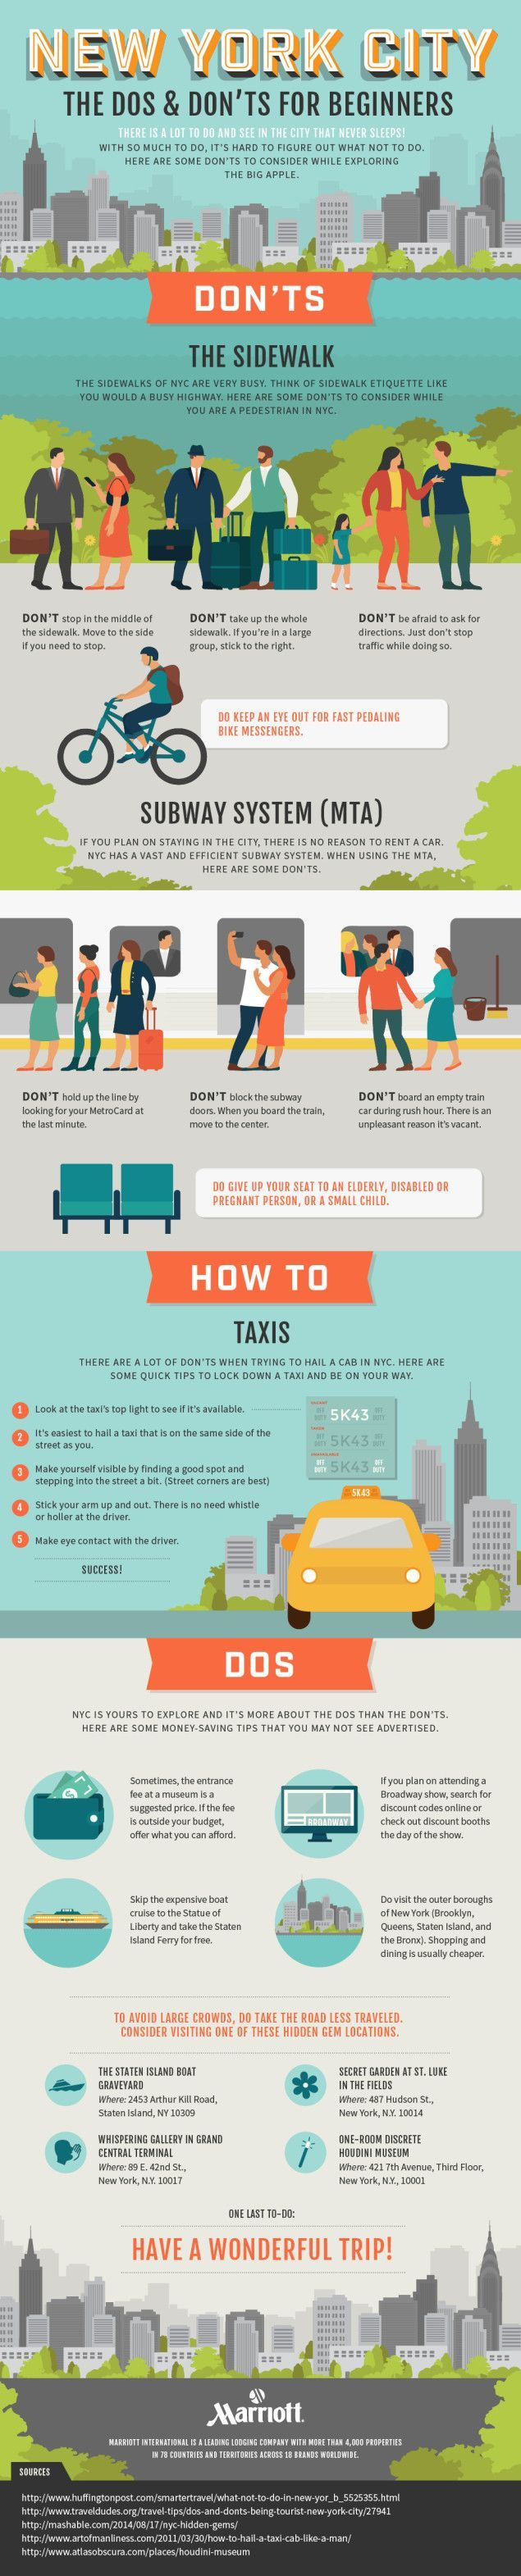 New York City for Beginners - Dos and Don'ts and Travel Tips Infographic